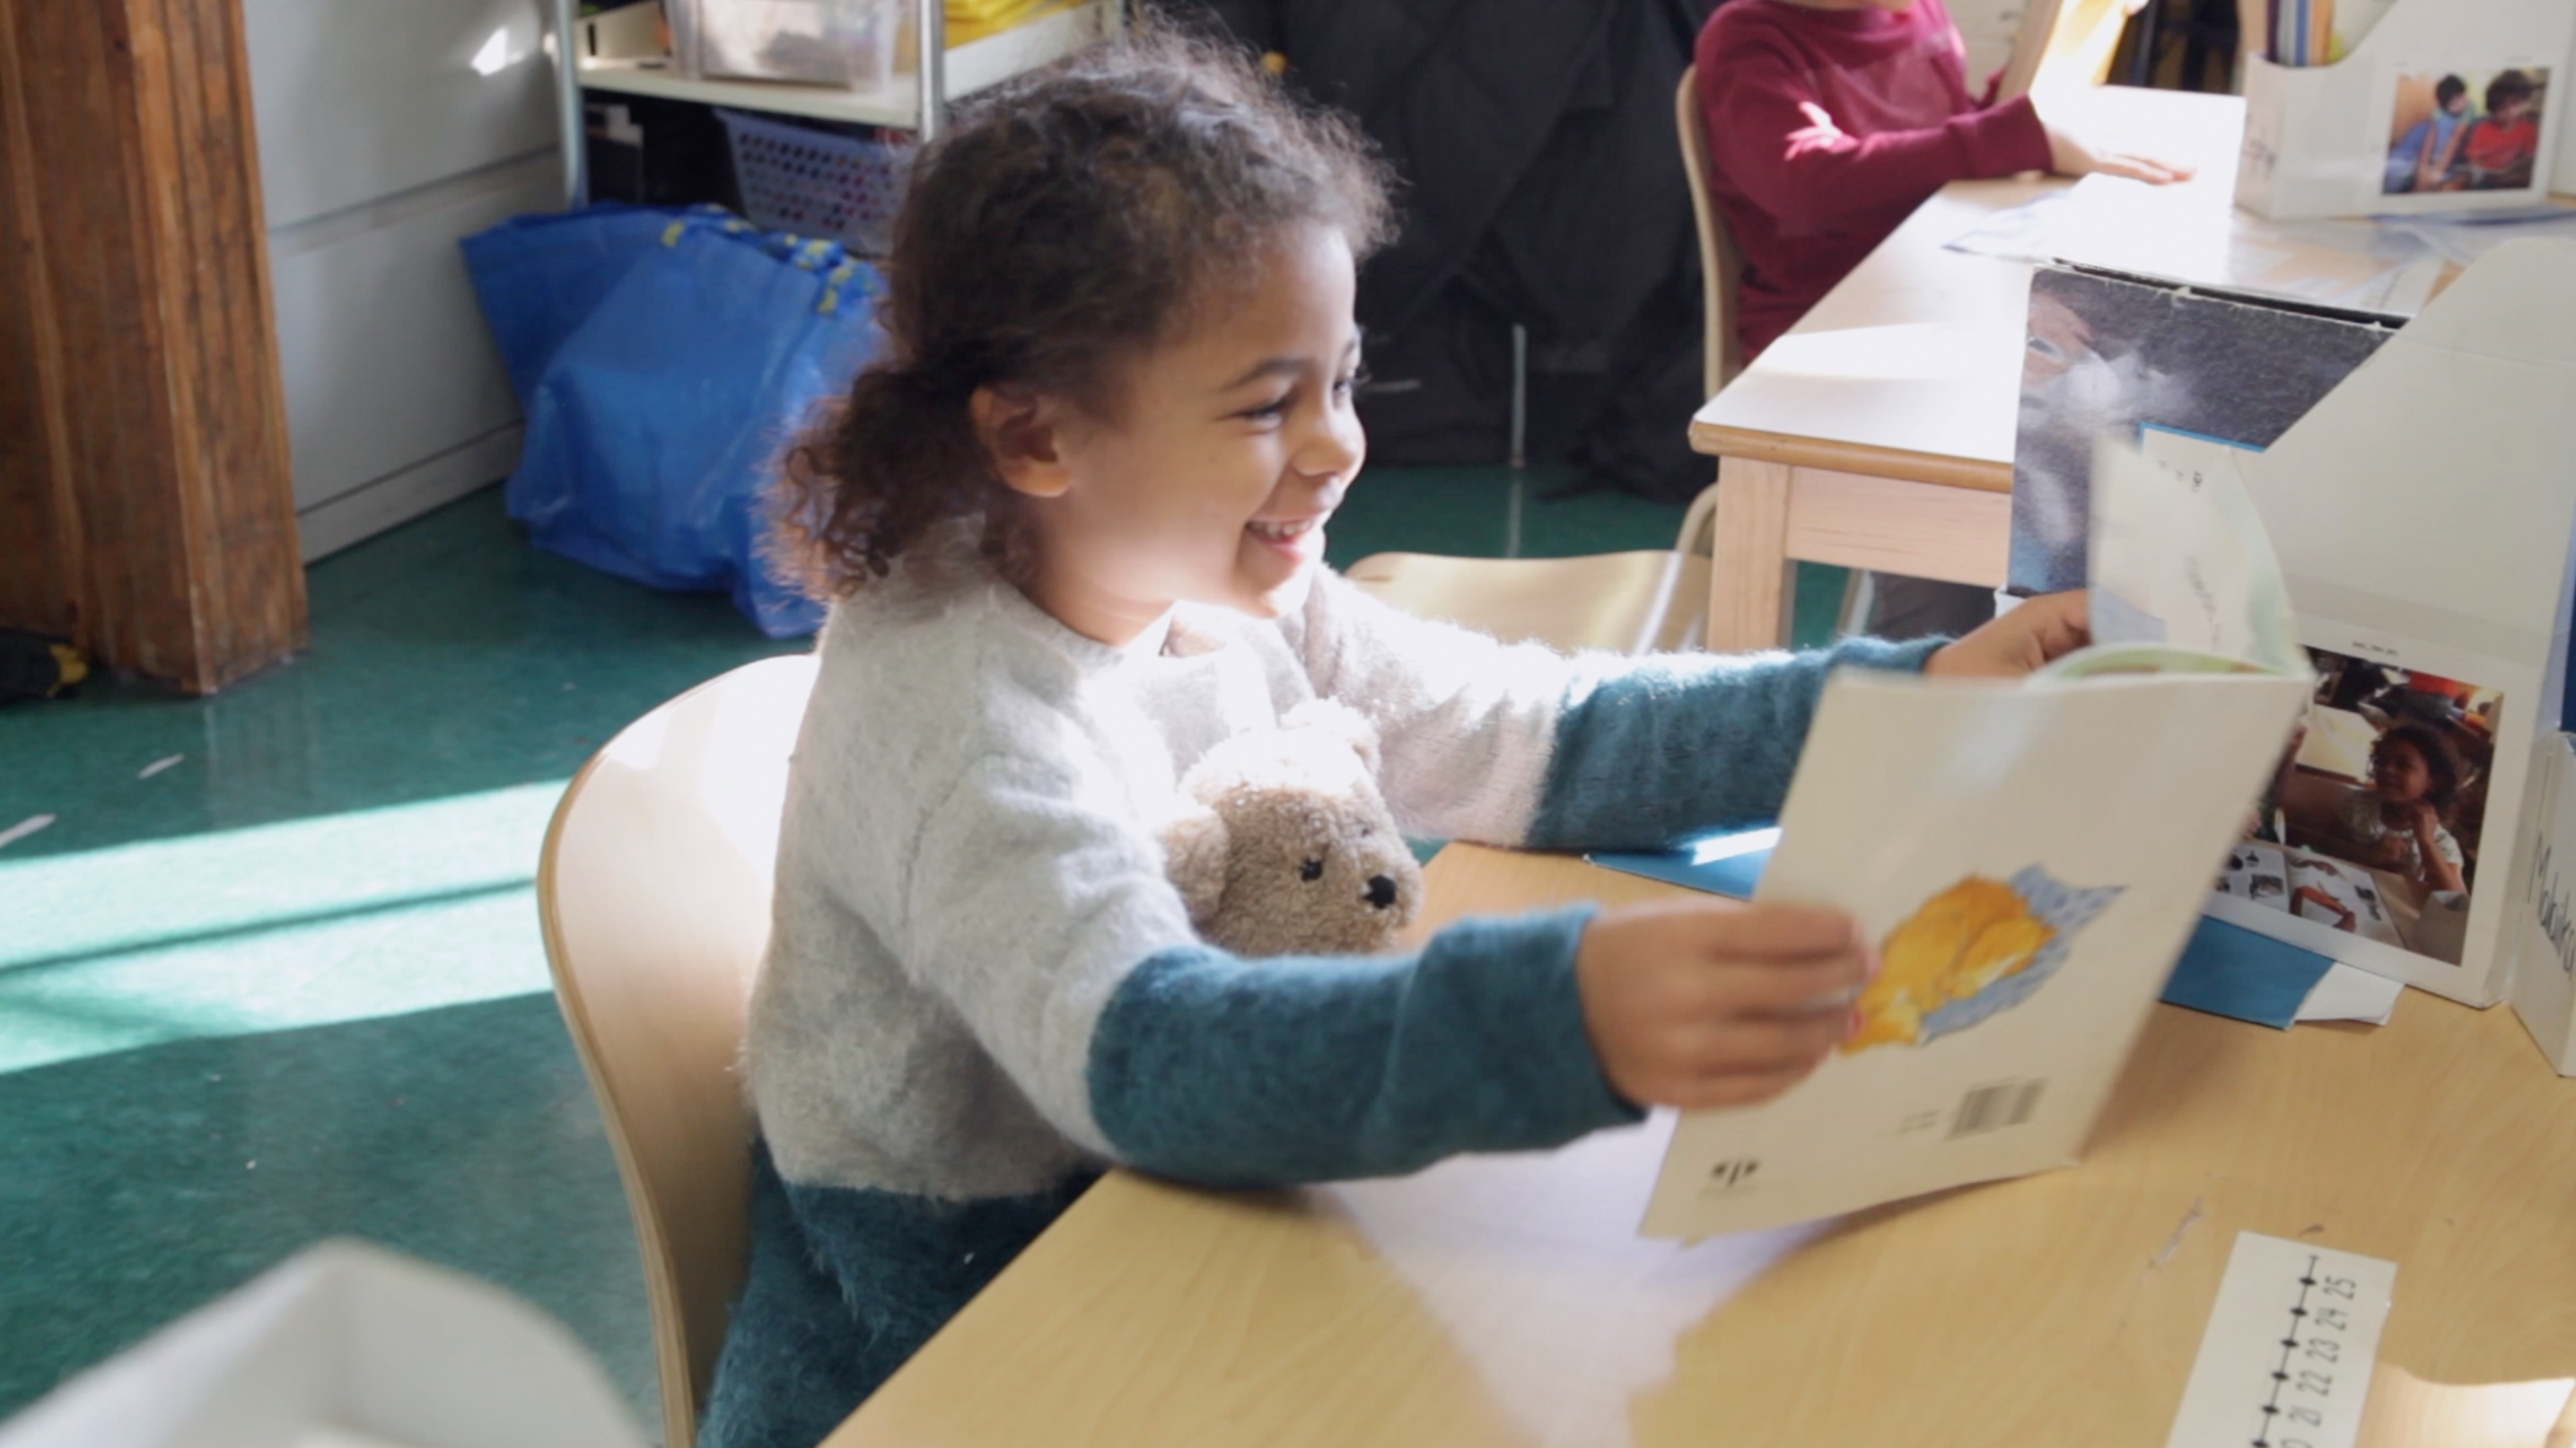 Student reading and smiling with her teddy bear in her lap